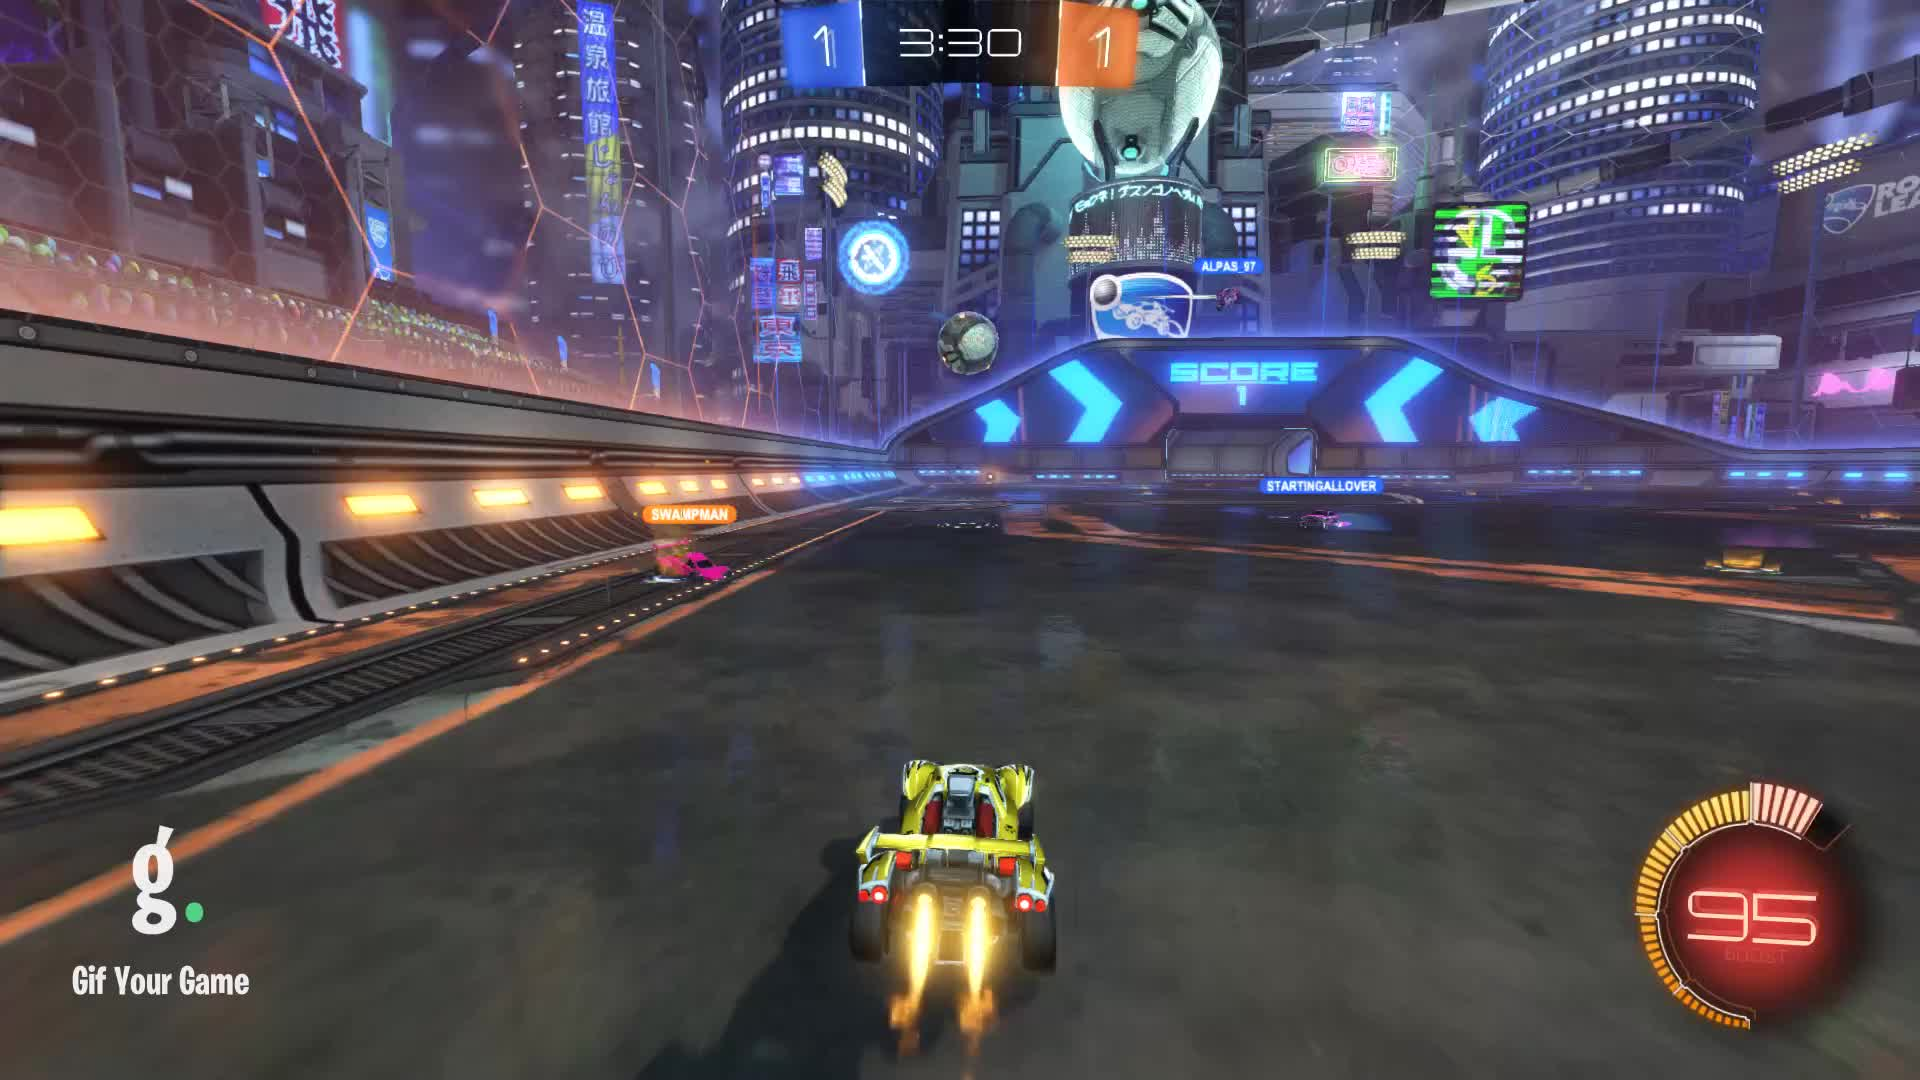 Gif Your Game, GifYourGame, Goal, Newt, Rocket League, RocketLeague, Goal 3: Newt GIFs